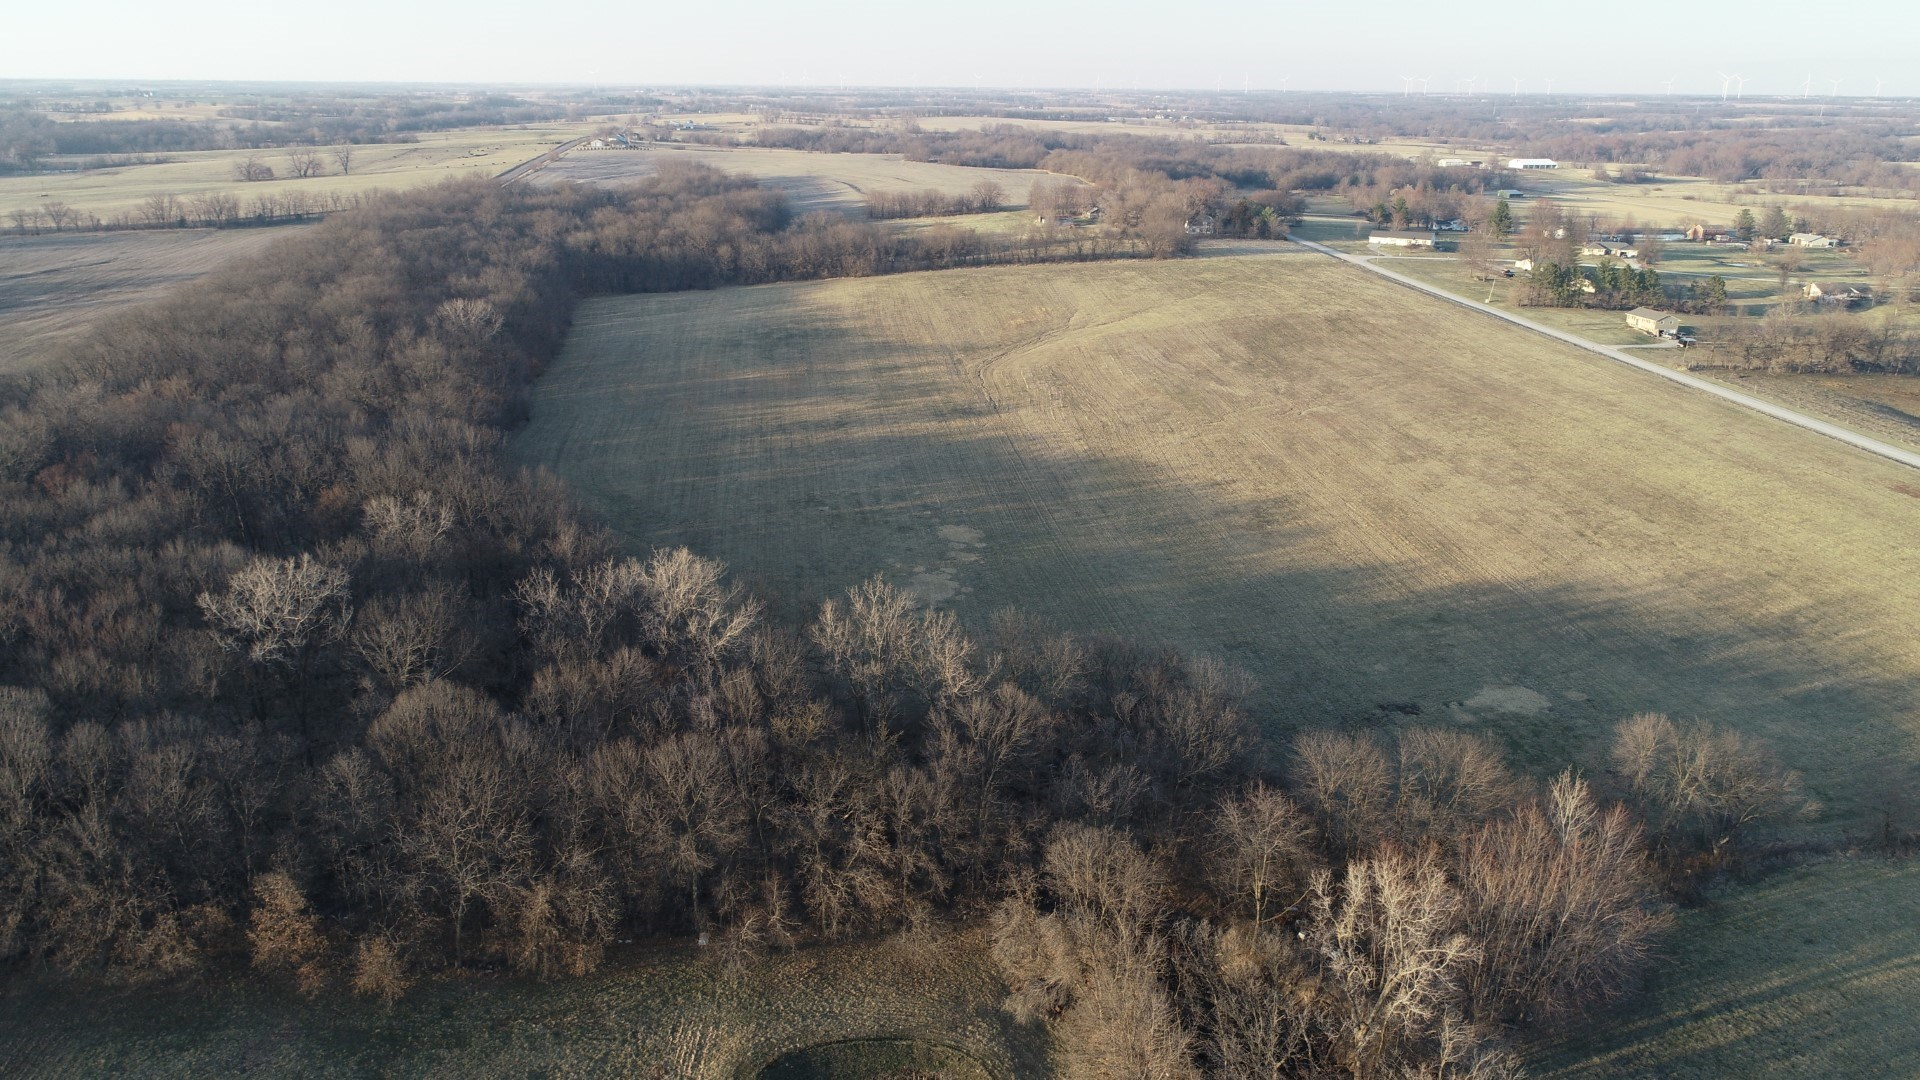 TRACT 1 20+/- Acres Building Site- 15 Minutes from St Joe